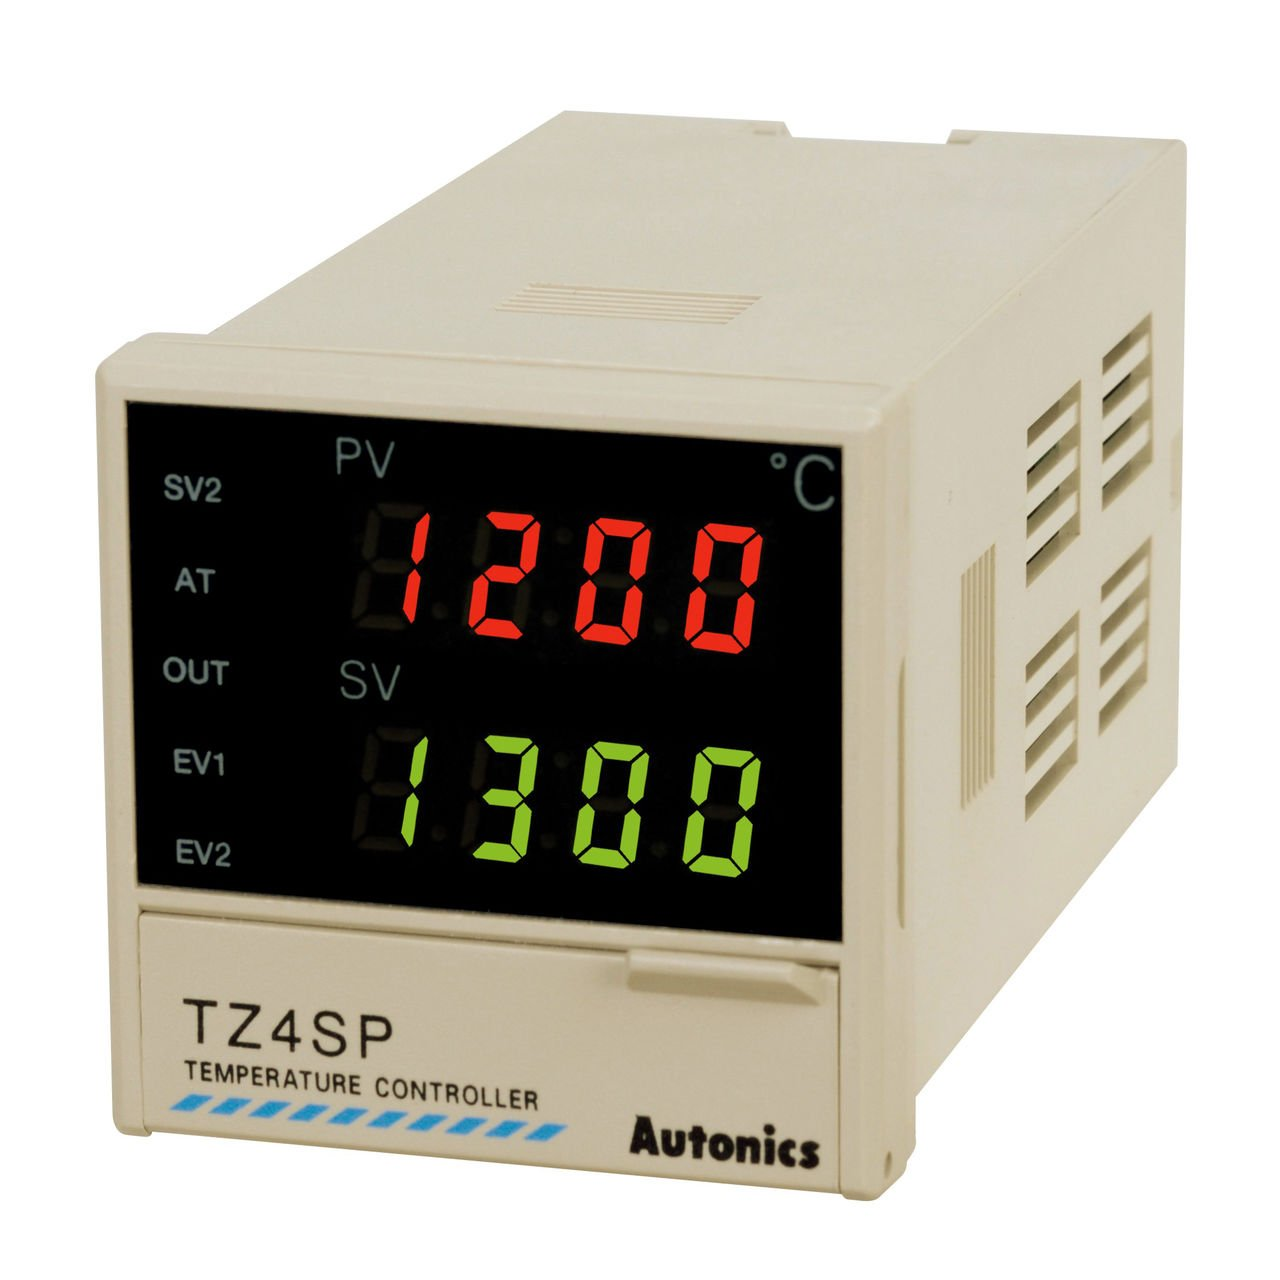 Autonics TZ4ST-24R PID Temp Control, 1/16 DIN, Digital, Relay Output, 2 Alarm Outputs, 100-240 VAC by Autonics USA, Inc